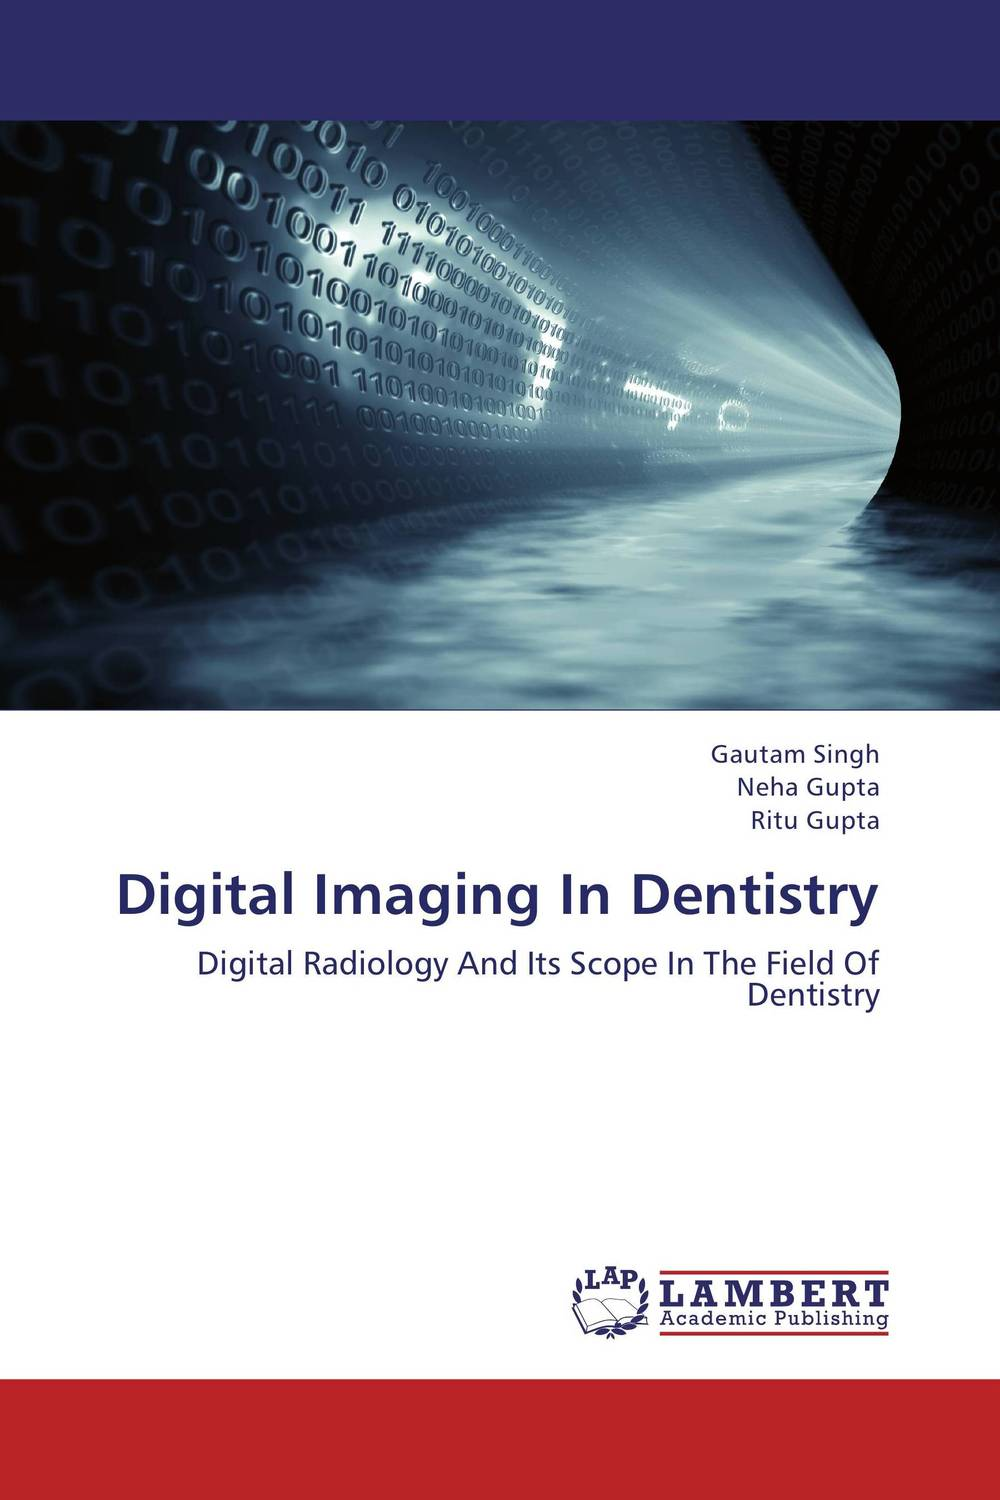 Digital Imaging In Dentistry link for tractor parts or other items not found in the store covers the items as agreed